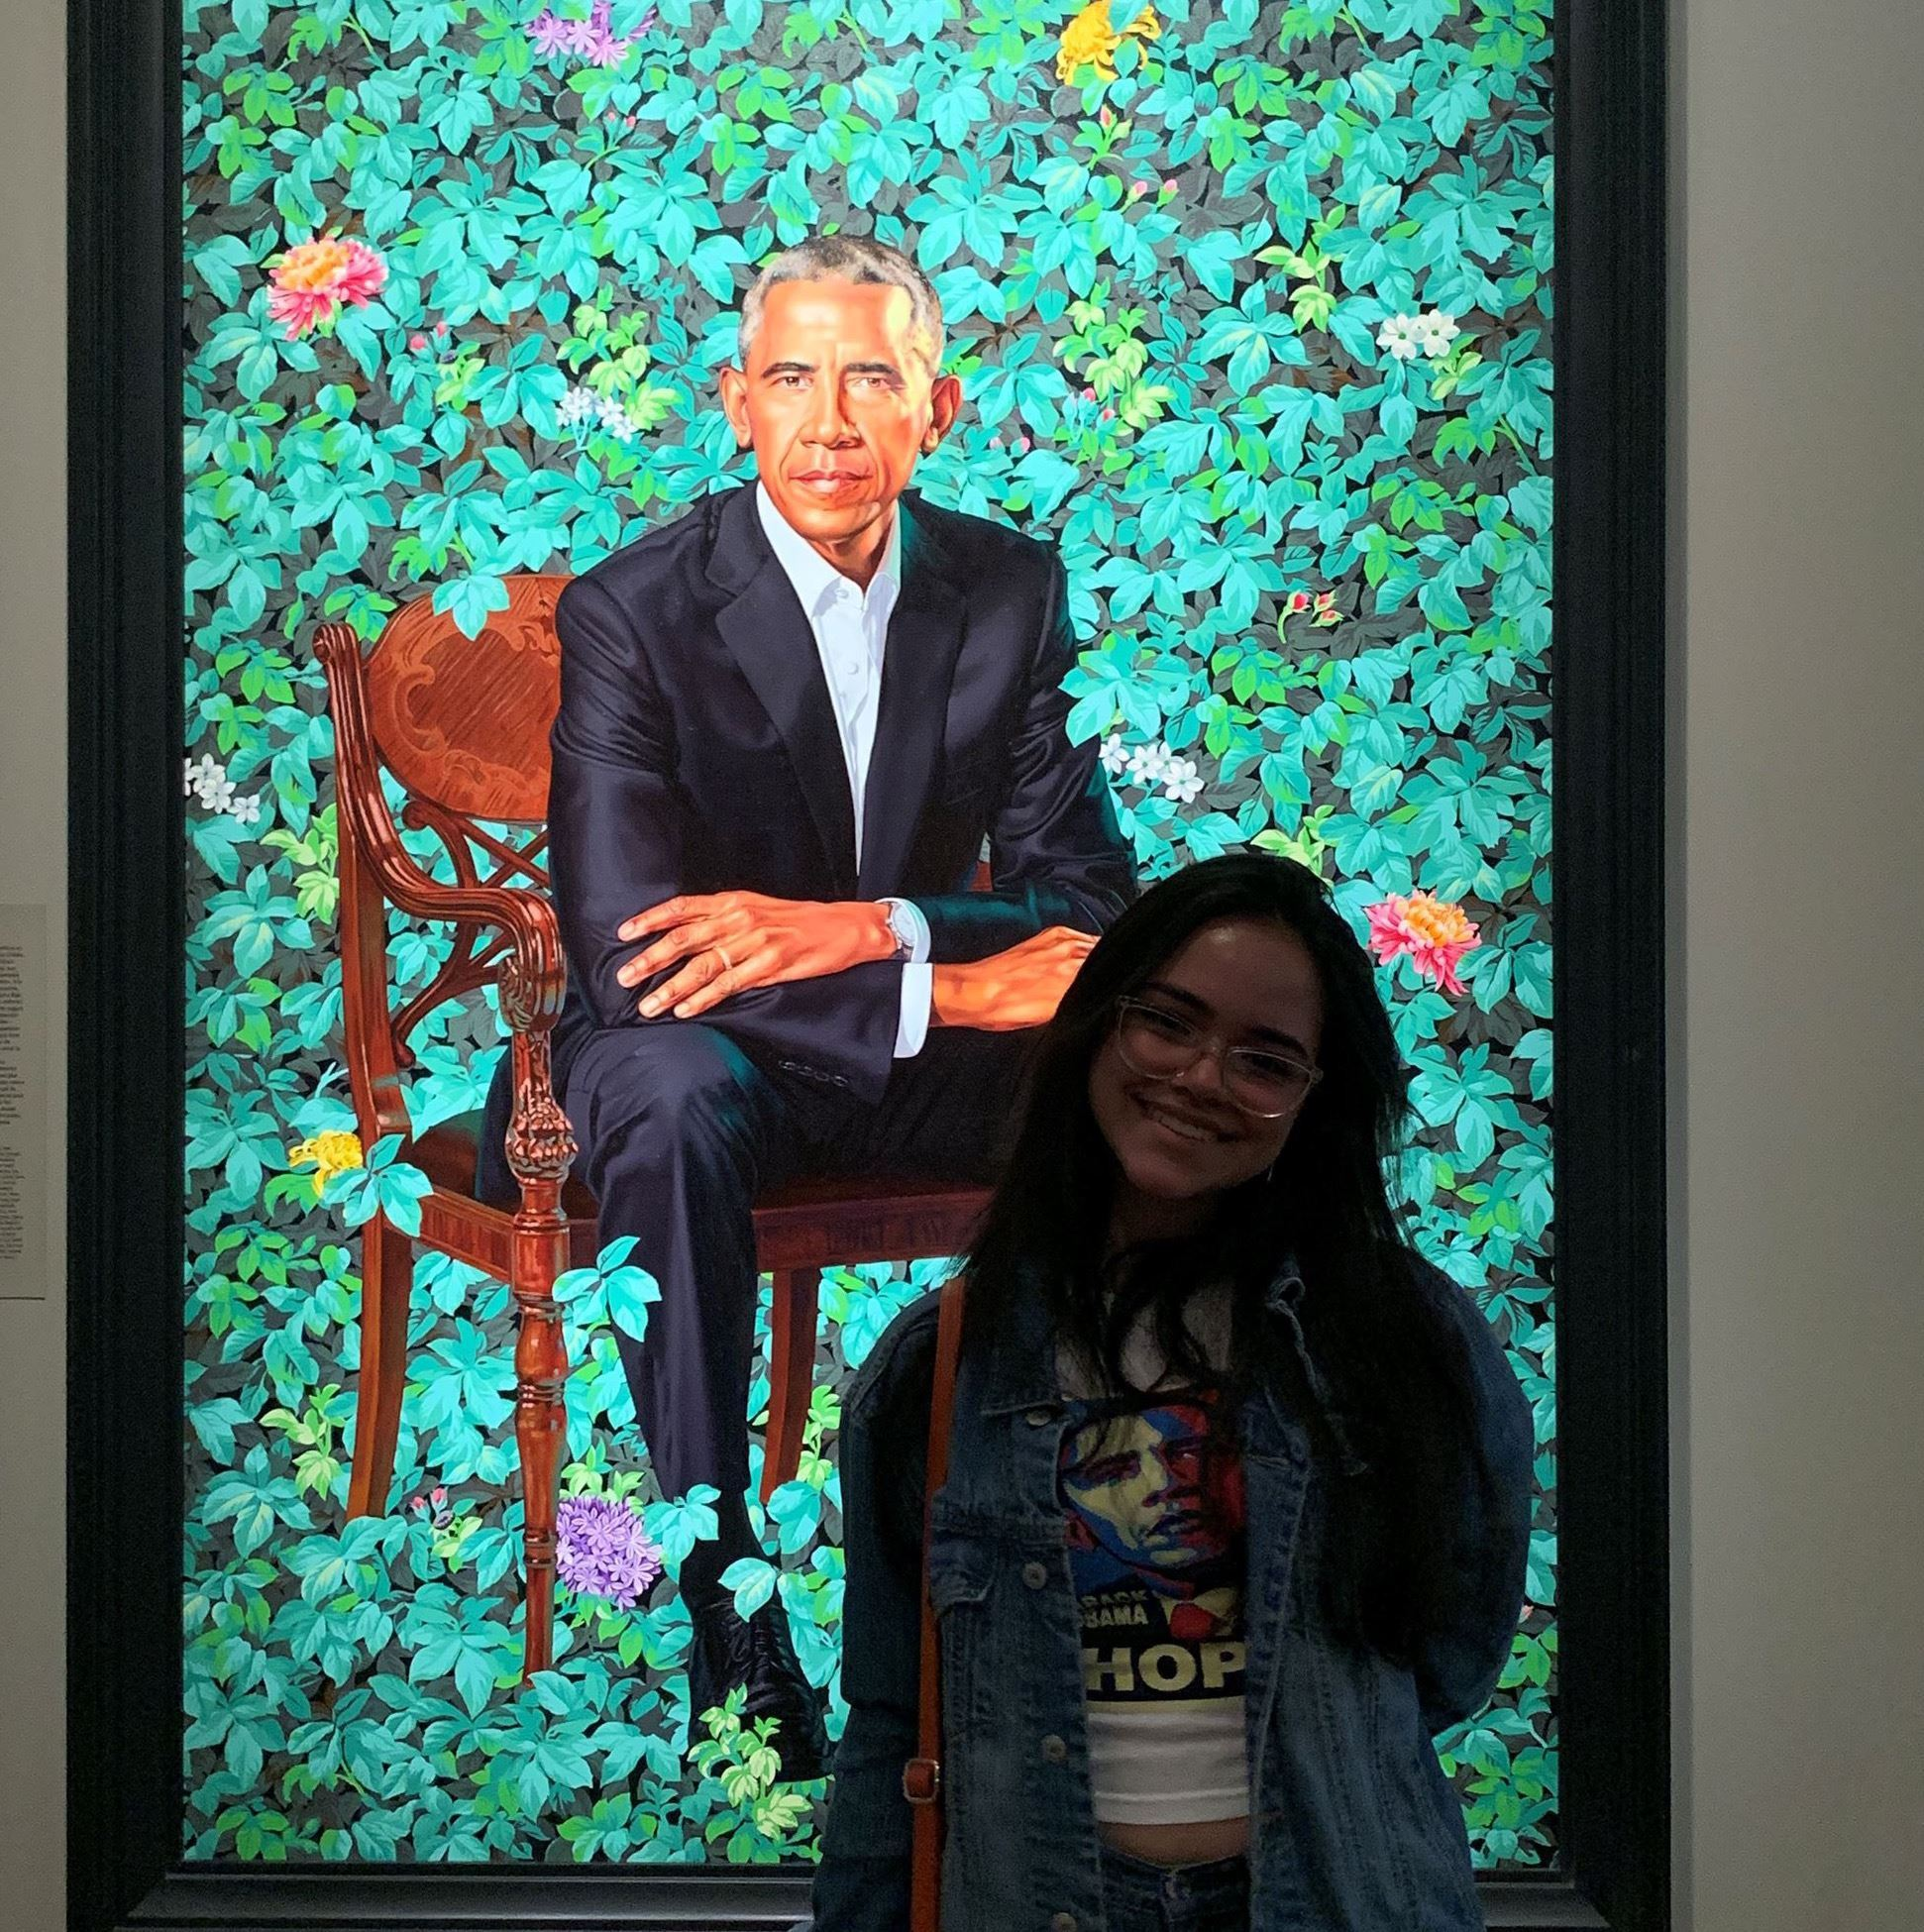 Barrack Obama Photo at Portrait Gallery